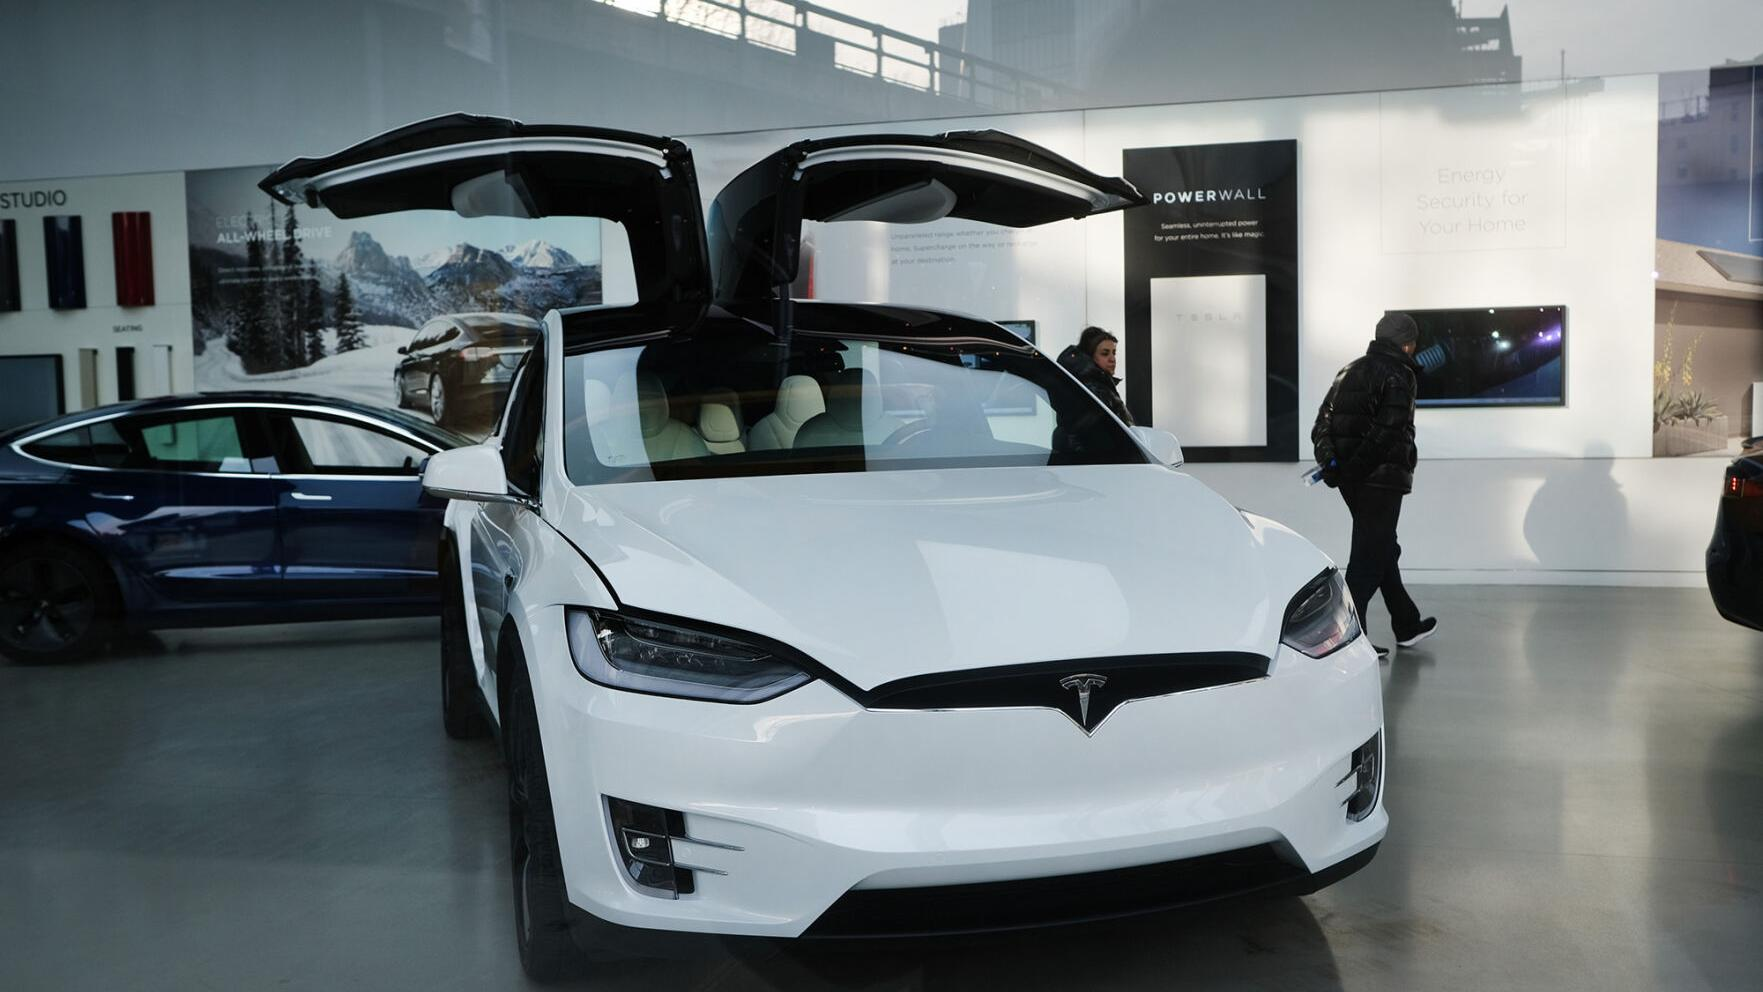 apple and tesla just announced stock splits here s what that means for your investments general westernmassnews com tesla just announced stock splits